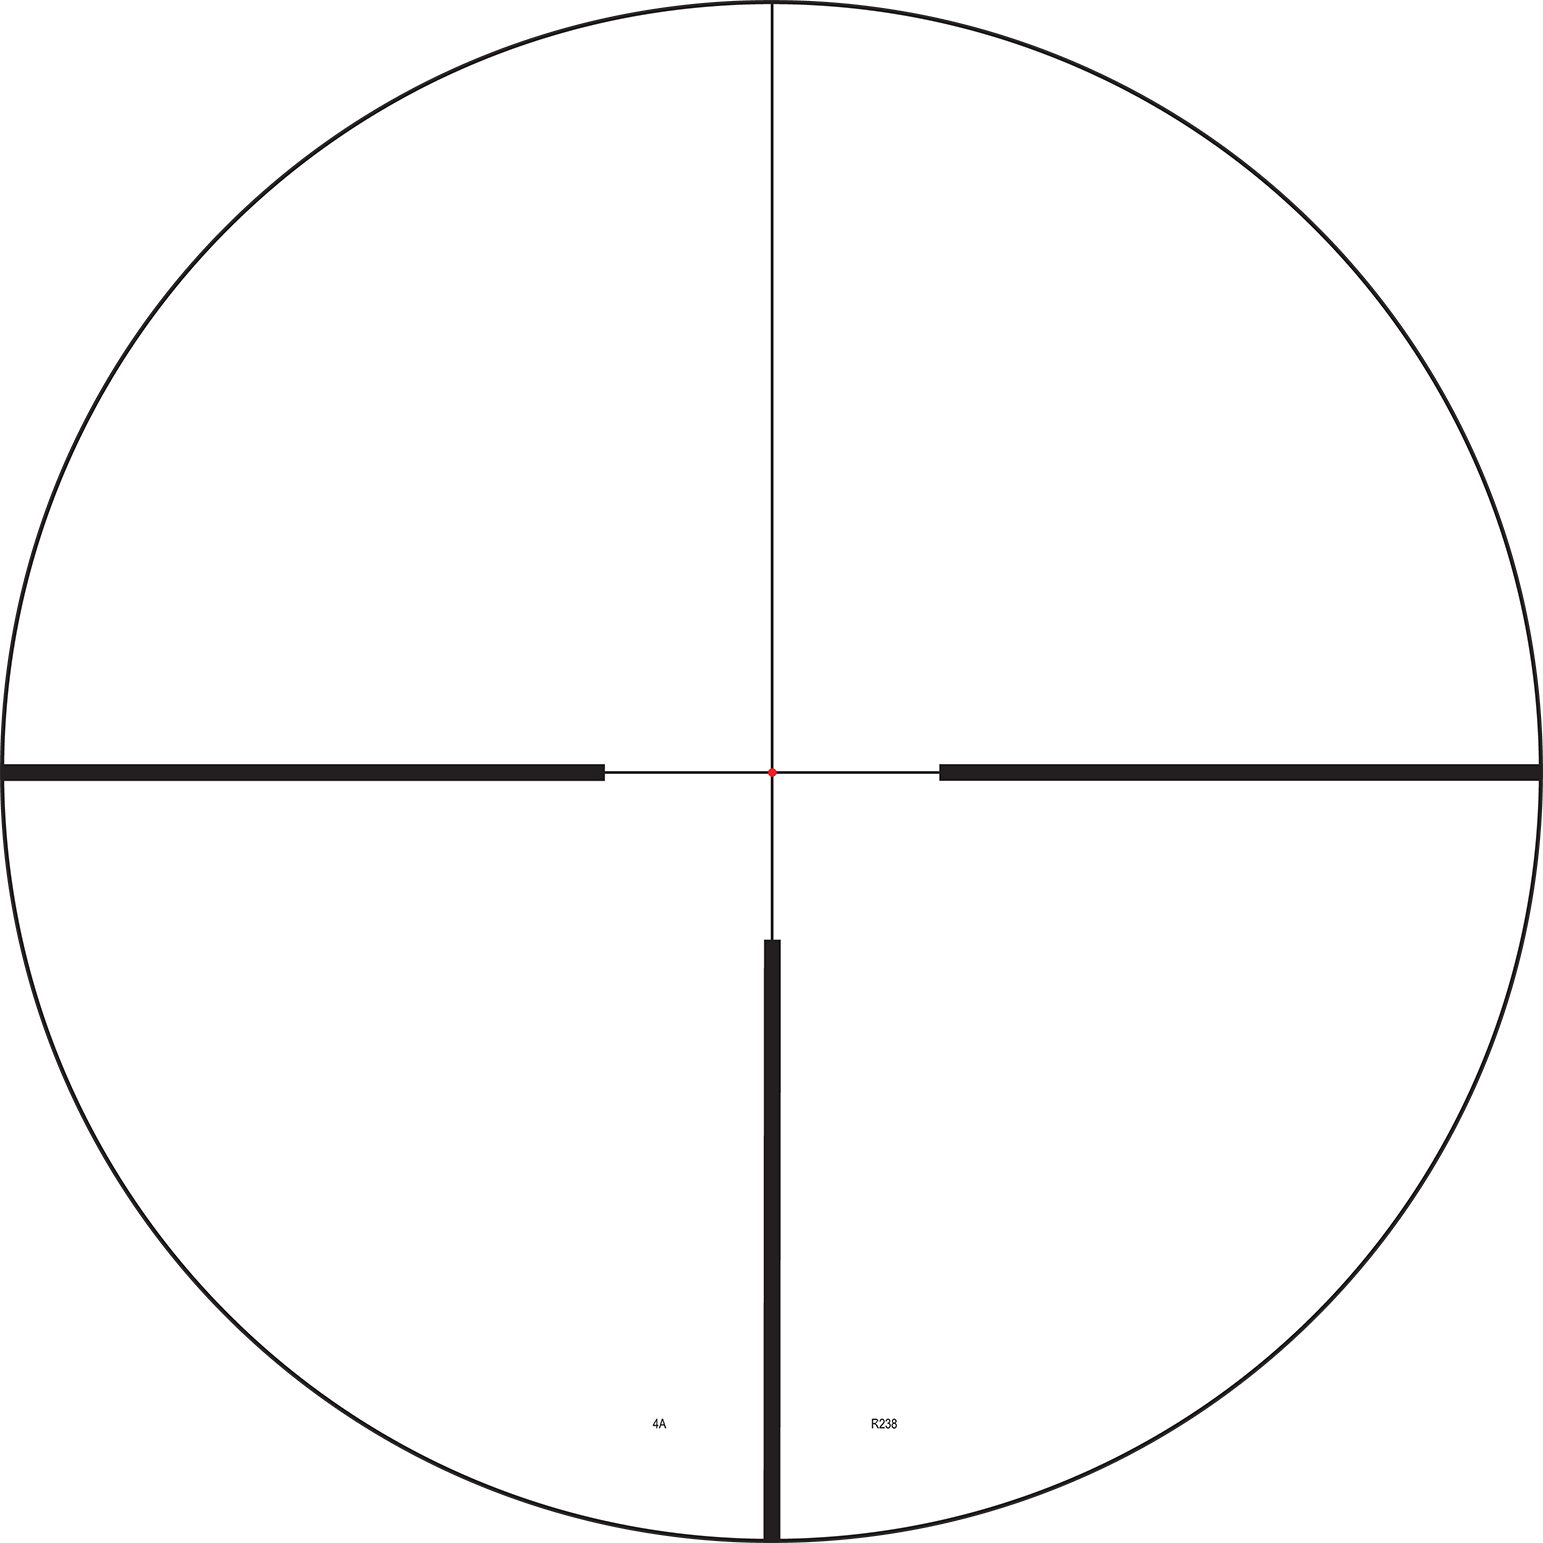 Reticle_Images - 4A_International_Only